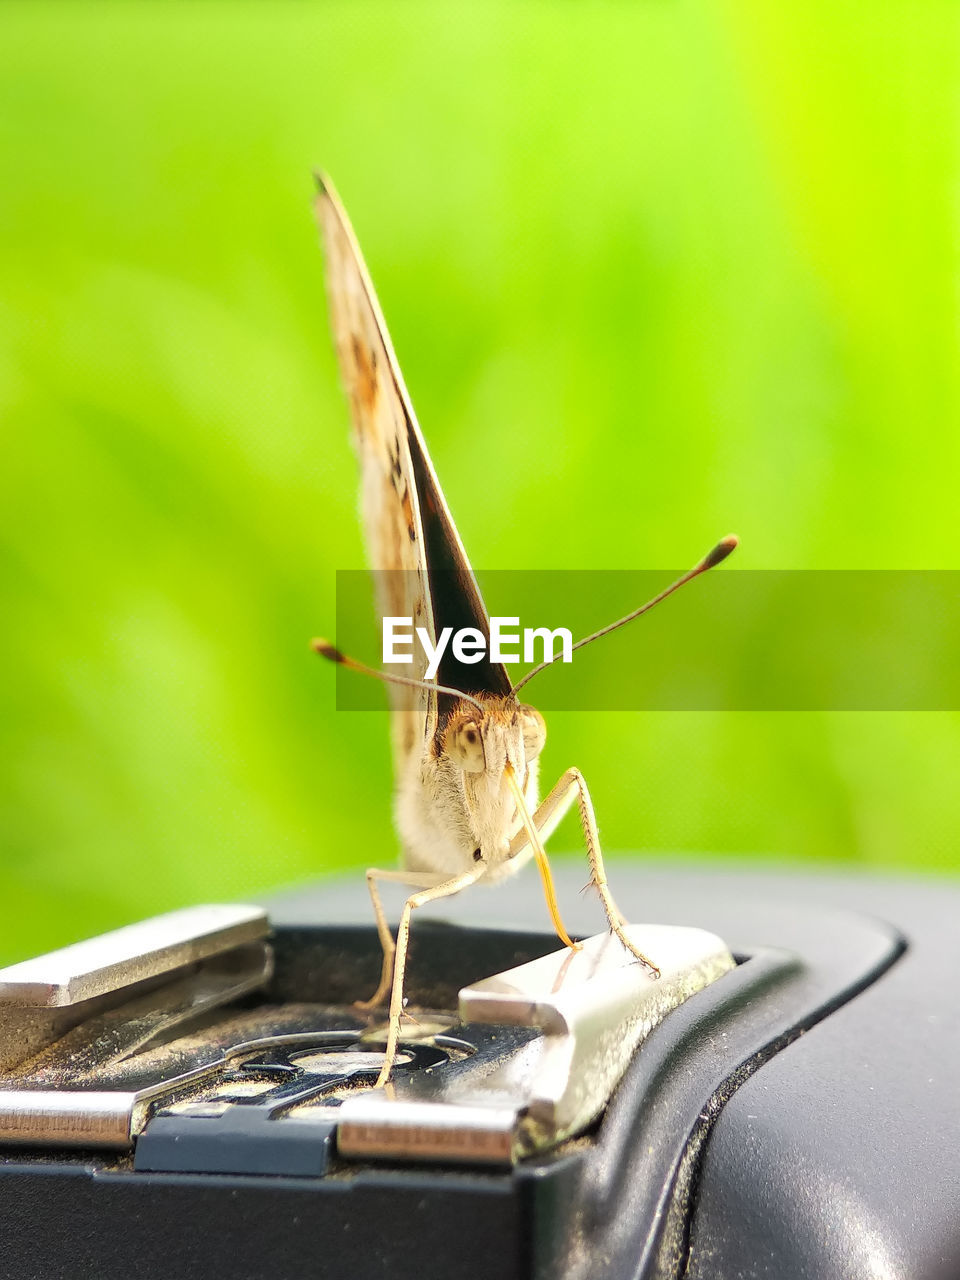 animal, one animal, animal themes, invertebrate, animal wildlife, insect, animals in the wild, no people, close-up, day, focus on foreground, animal antenna, selective focus, animal body part, nature, green color, outdoors, grasshopper, zoology, wall - building feature, butterfly - insect